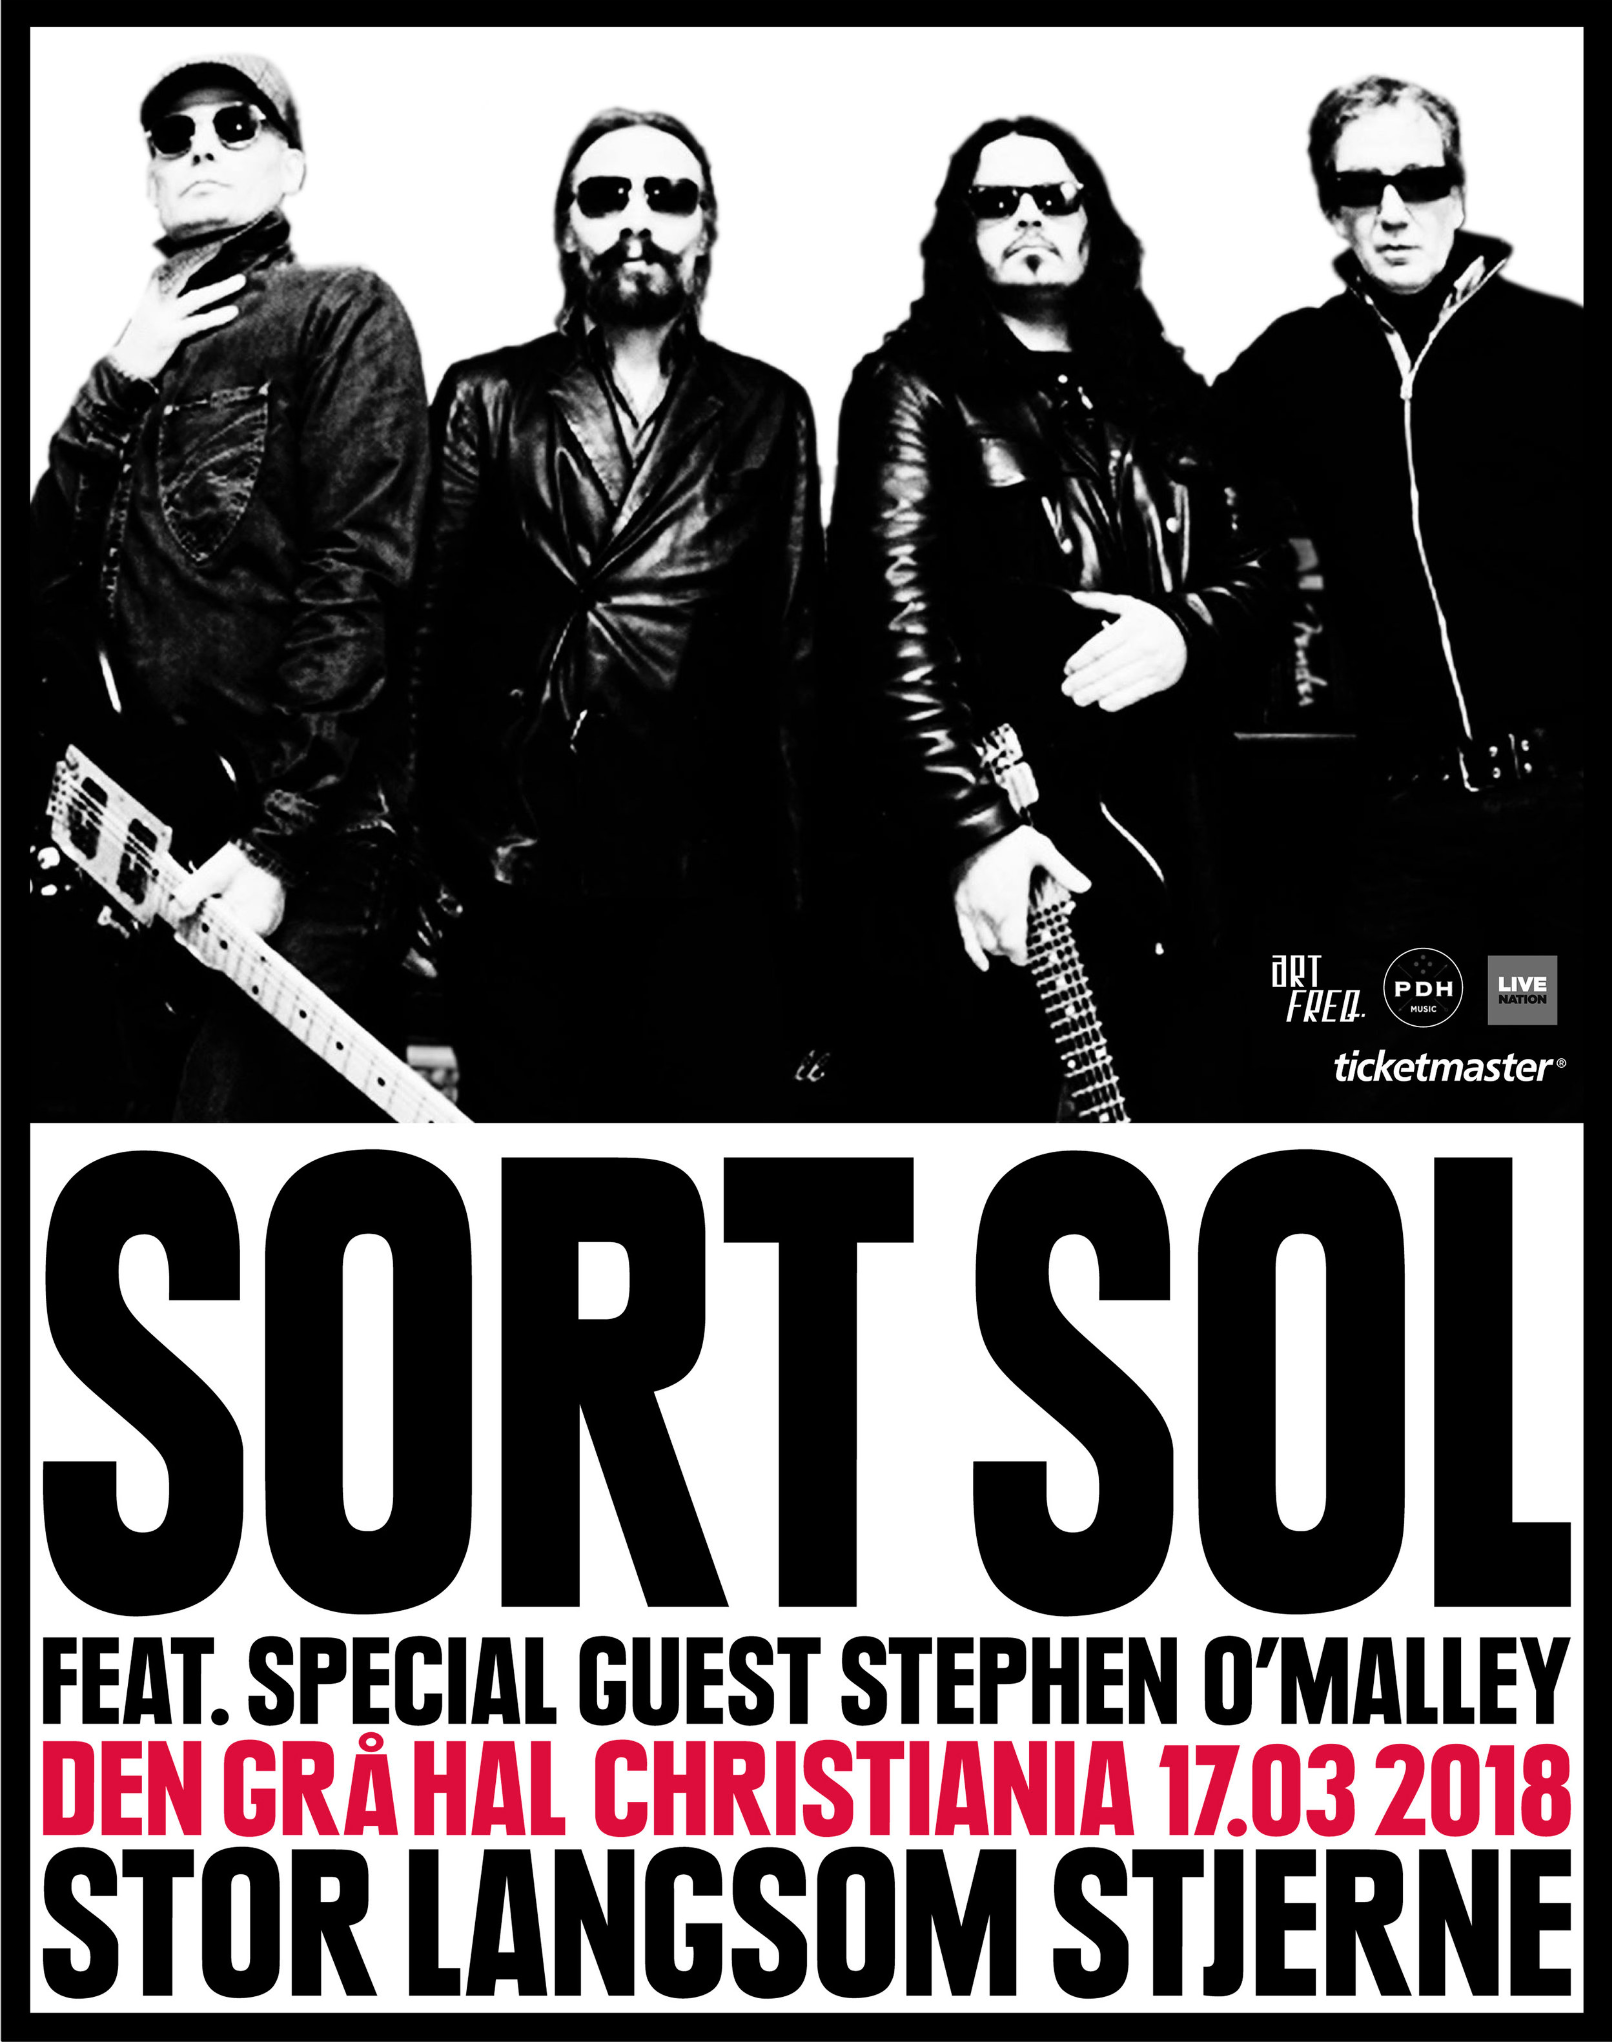 Sort Sol feat. Stephen O'Malley @ Den Gra Hal Christiania